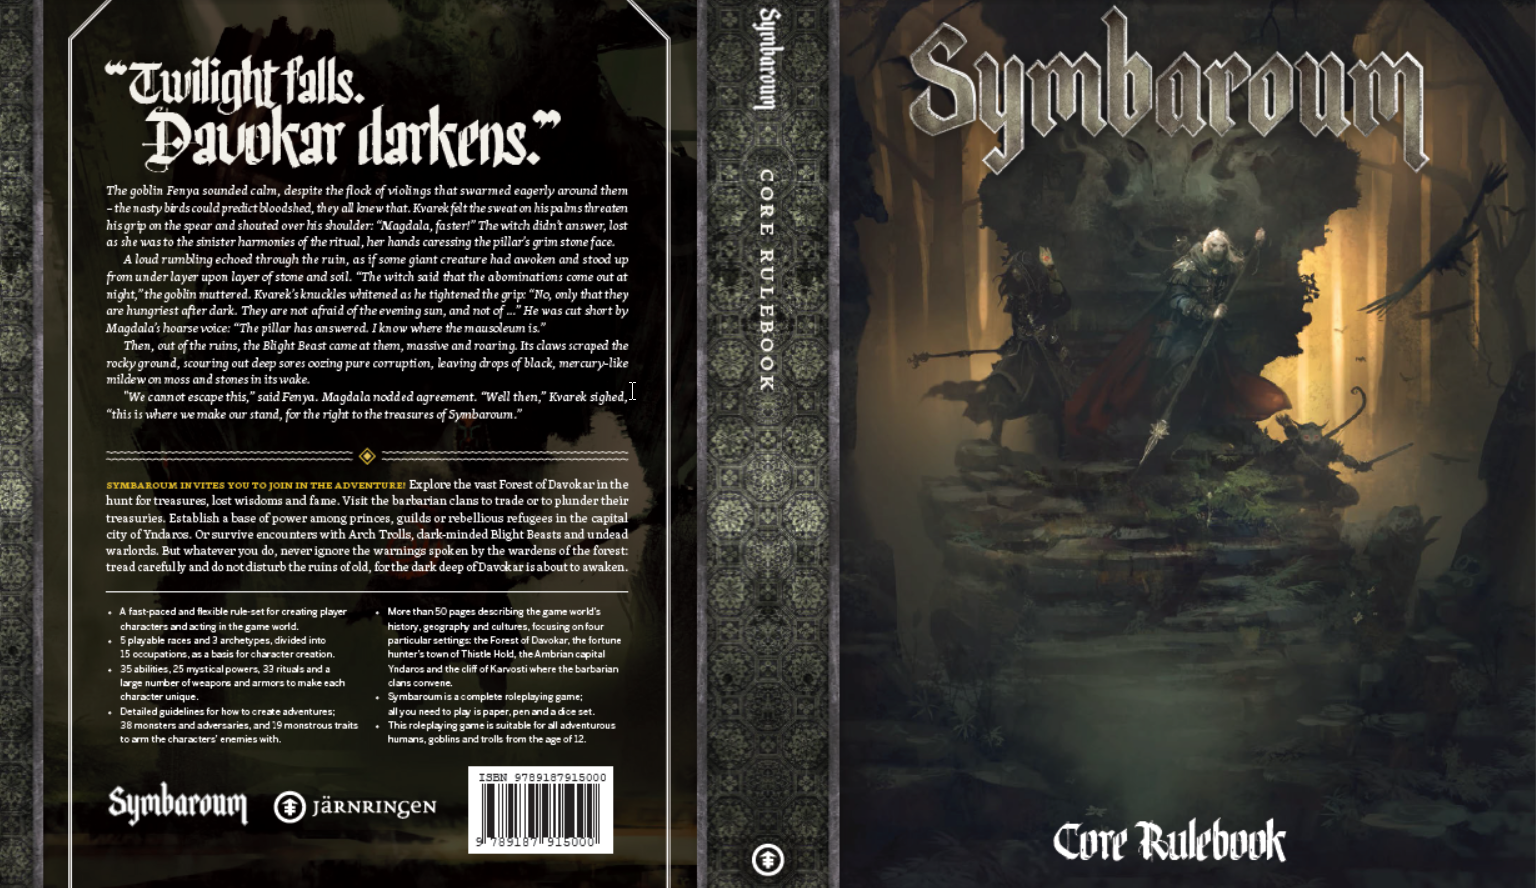 Symbaroum RPG Cover (English version, Image: Järnringen)